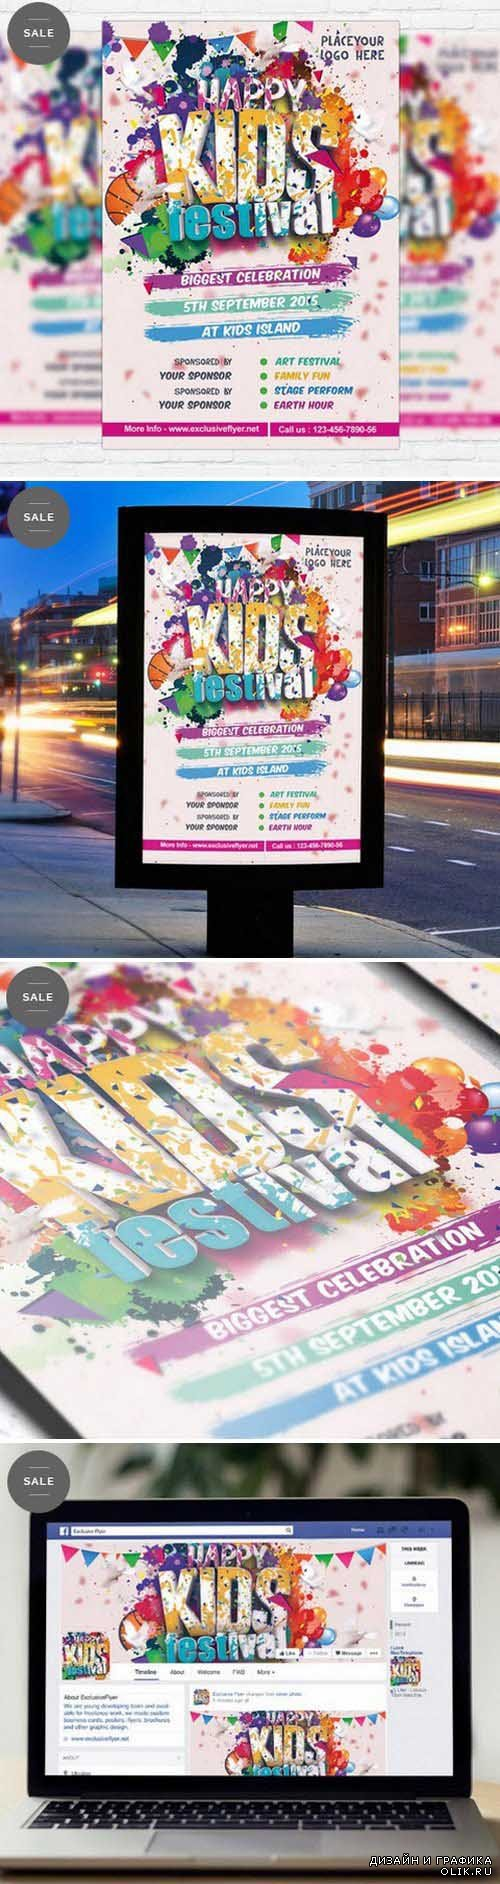 Flyer Template - Kids Festival + Facebook Cover